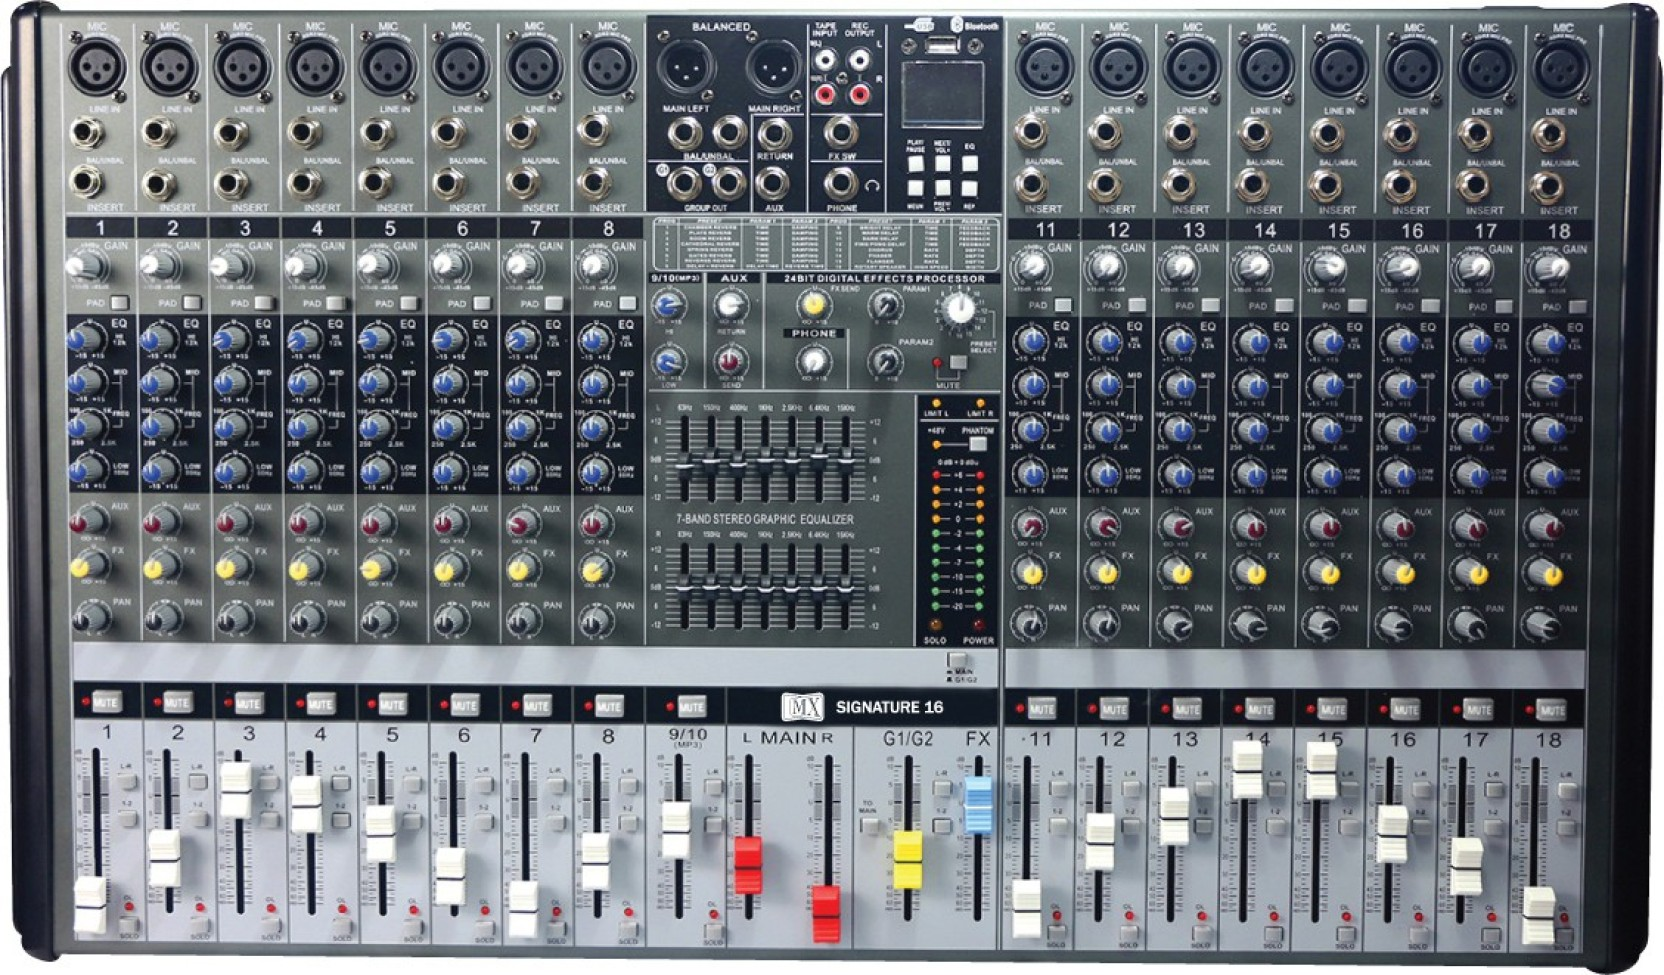 Mx Live Audio Mixer 16 Channel Professional With Usb 5 Portable Add To Cart